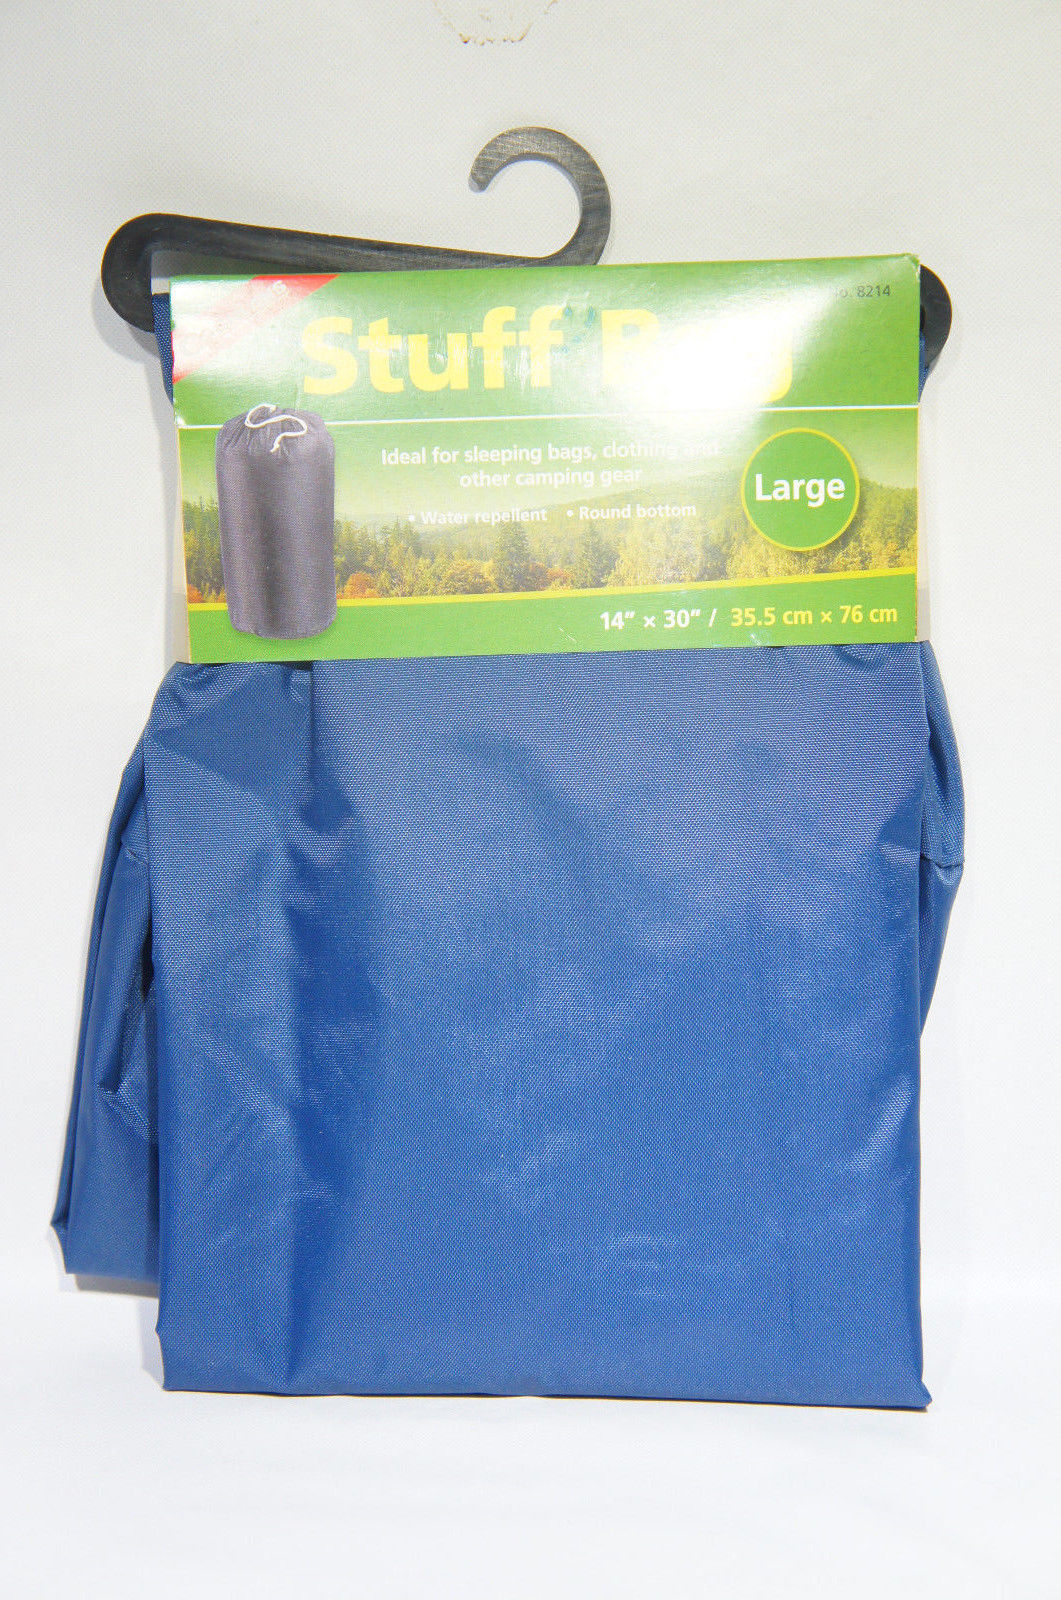 "Coghlan's Stuff Bag 14"" x 30"" Large Water Repellent Sleeping Bag"